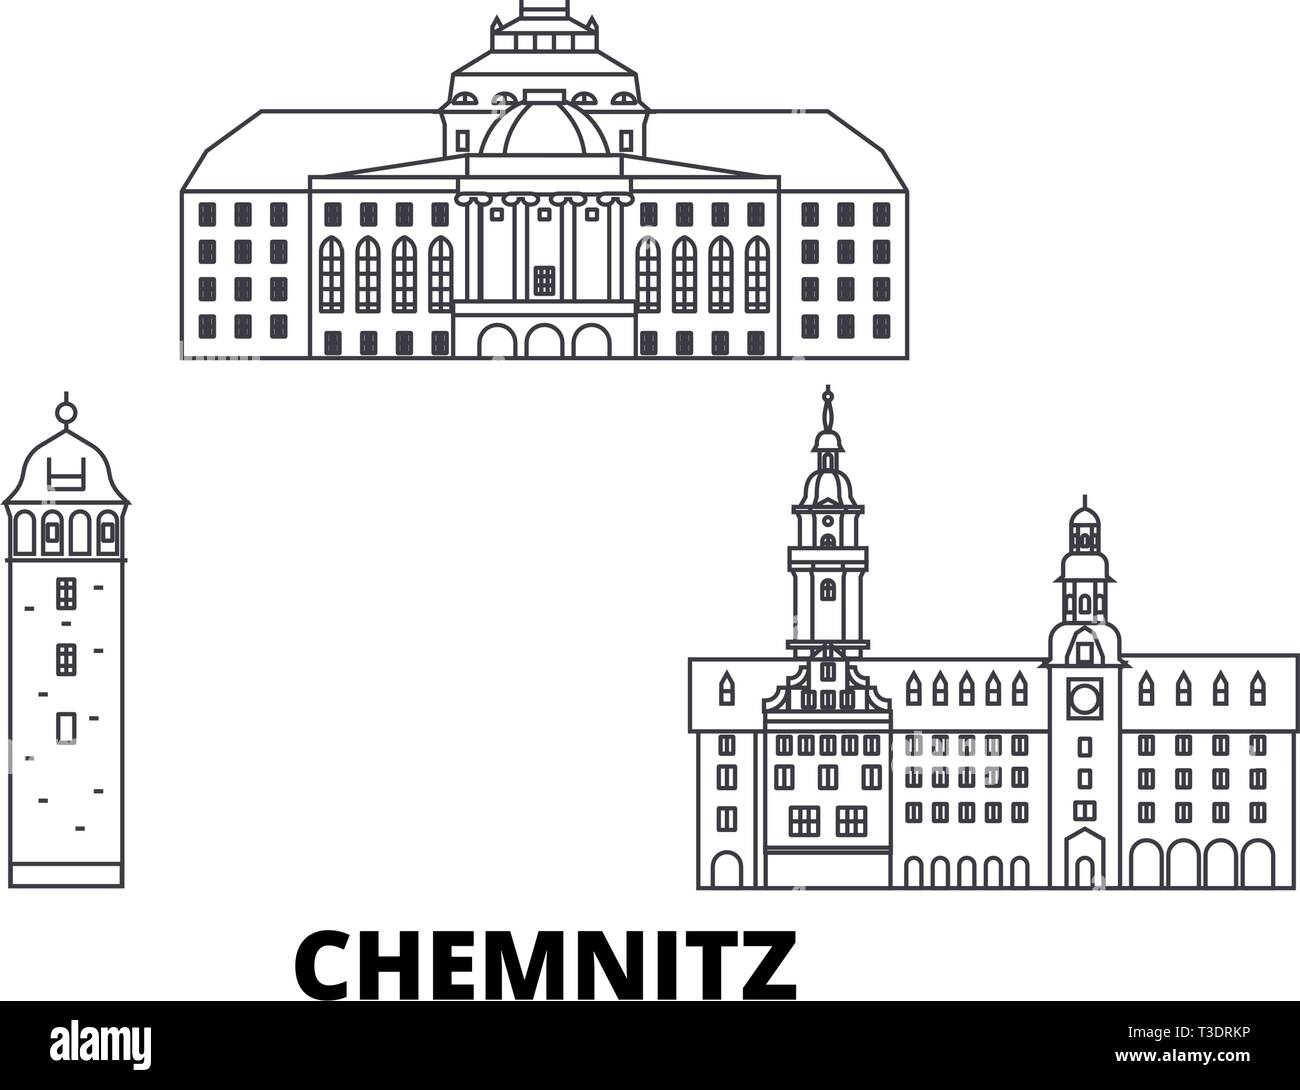 Germany, Chemnitz line travel skyline set. Germany, Chemnitz outline city vector illustration, symbol, travel sights, landmarks. - Stock Vector